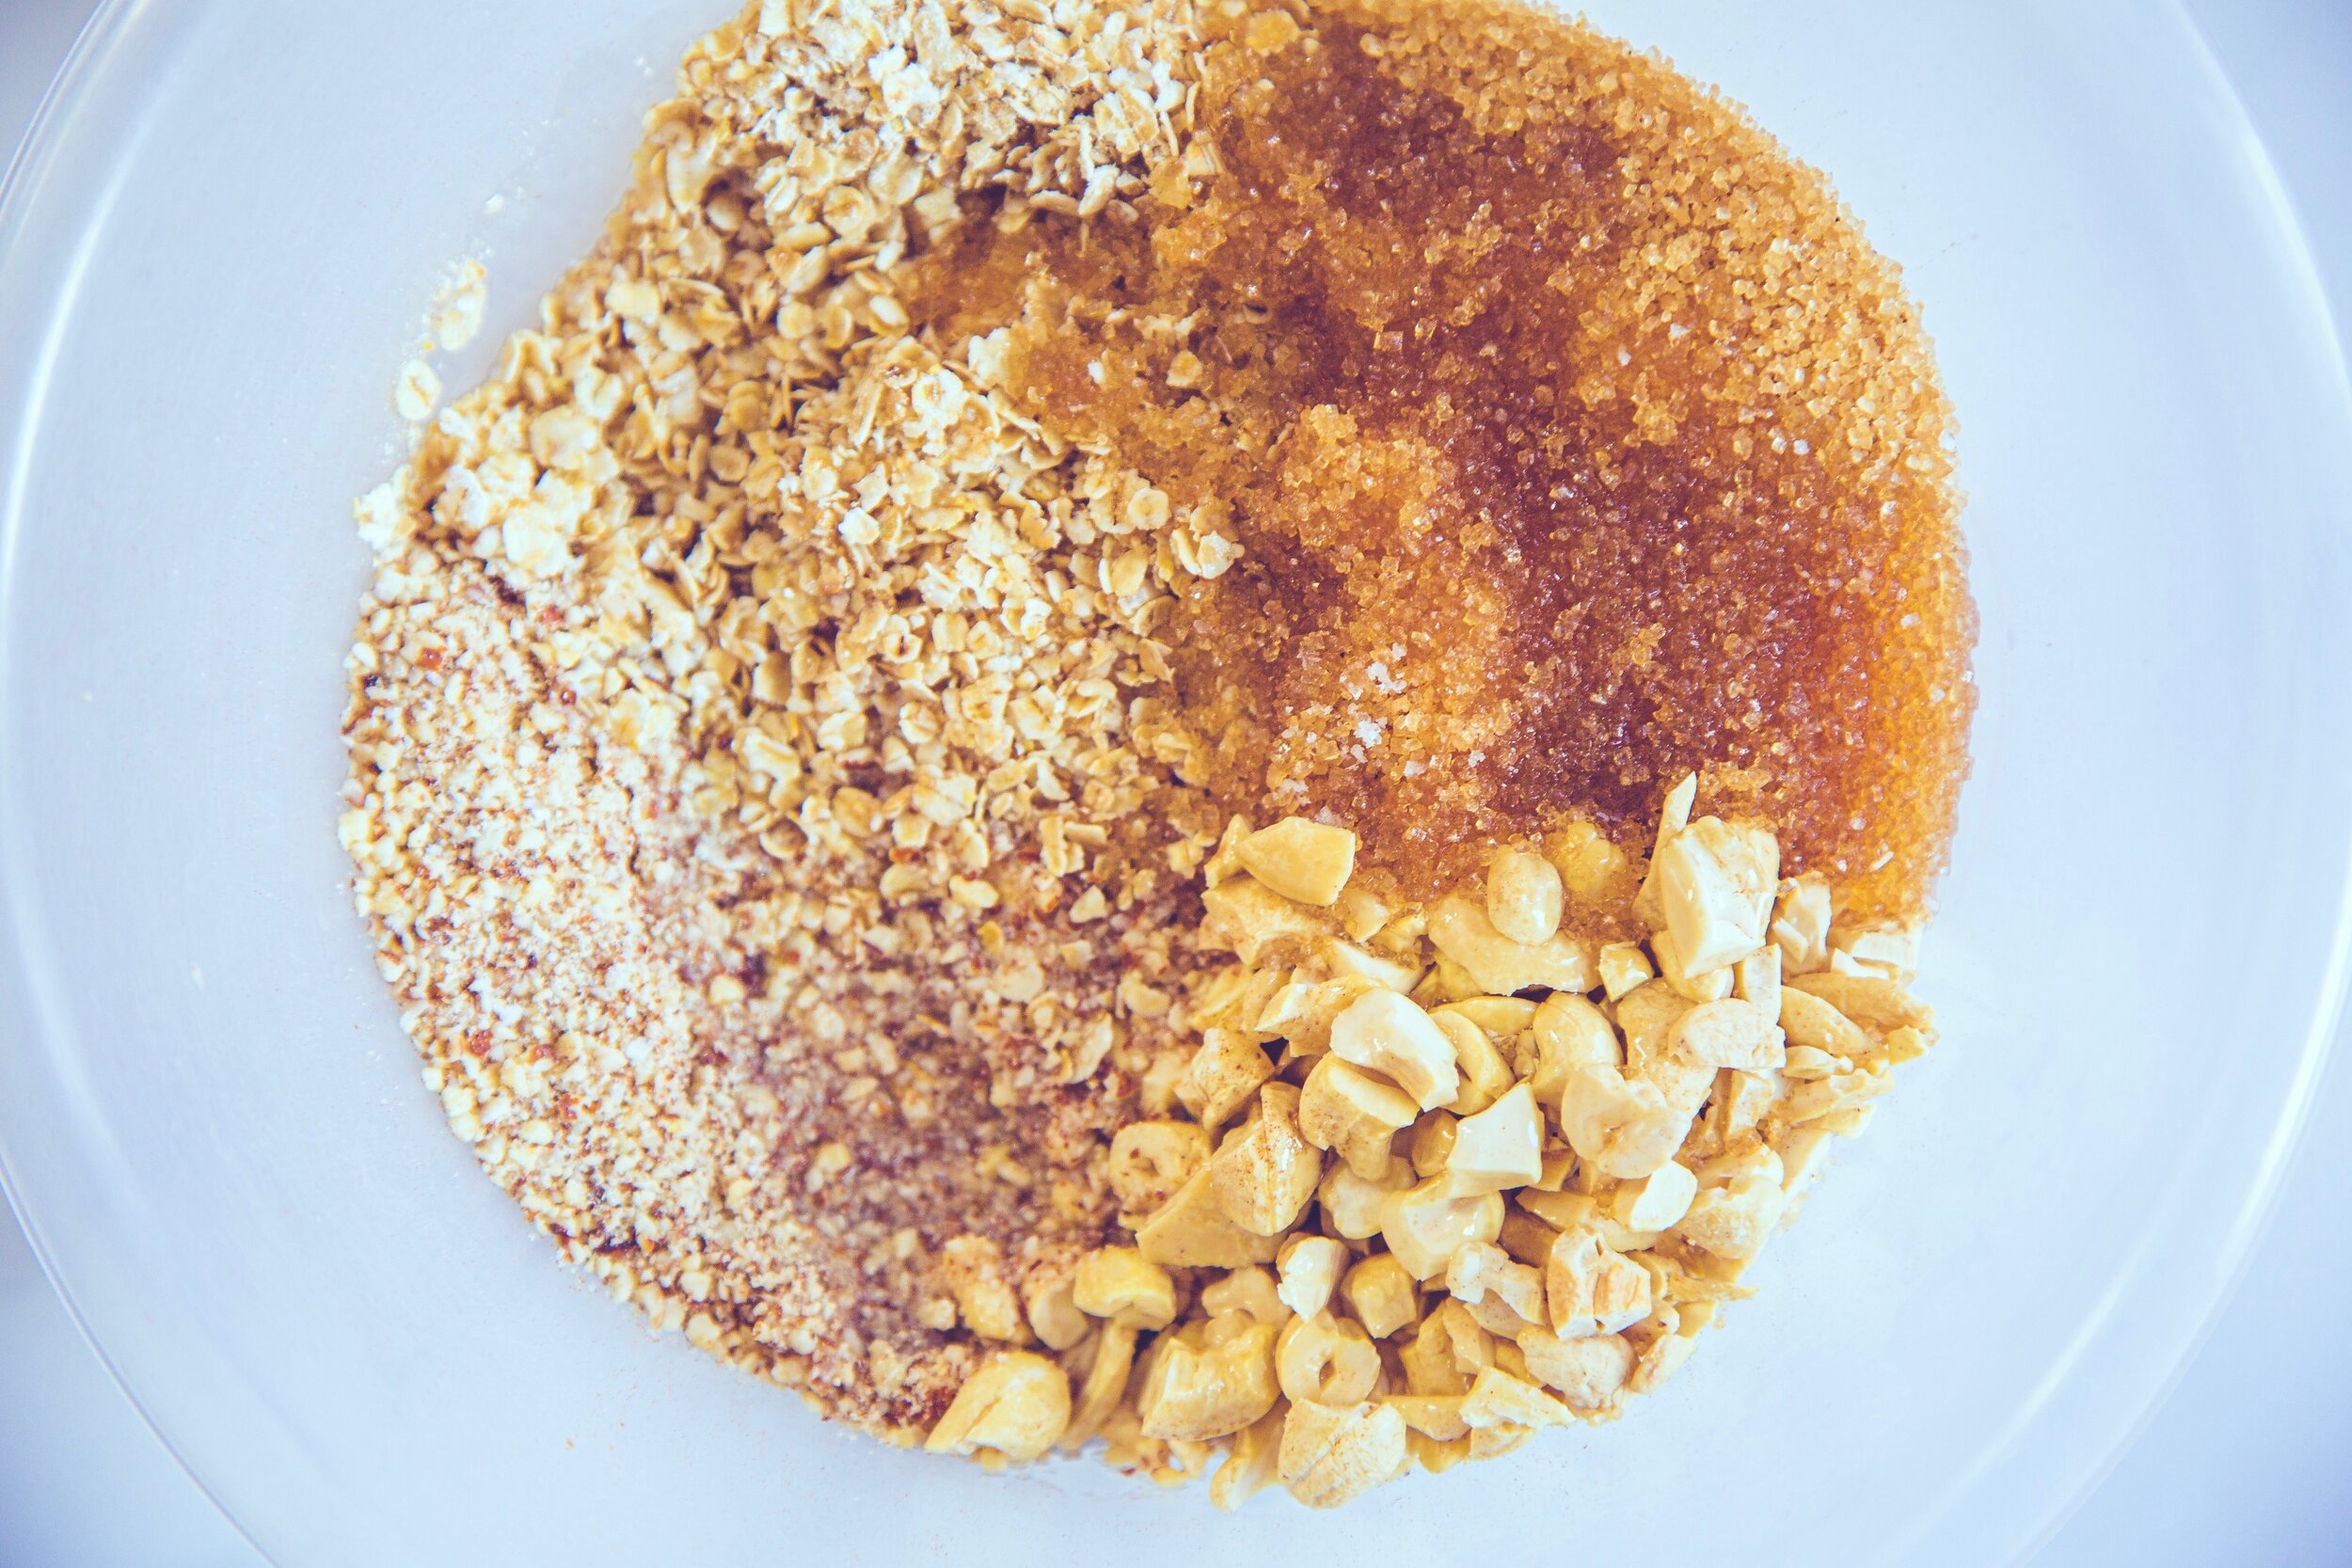 95g 1 cup oats 1/2 cup coconut oil ml? 75g 1/2 cup roughly chopped cashews 125g 1 cup almond meal or sunflower seeds  1/4 tsp sea salt